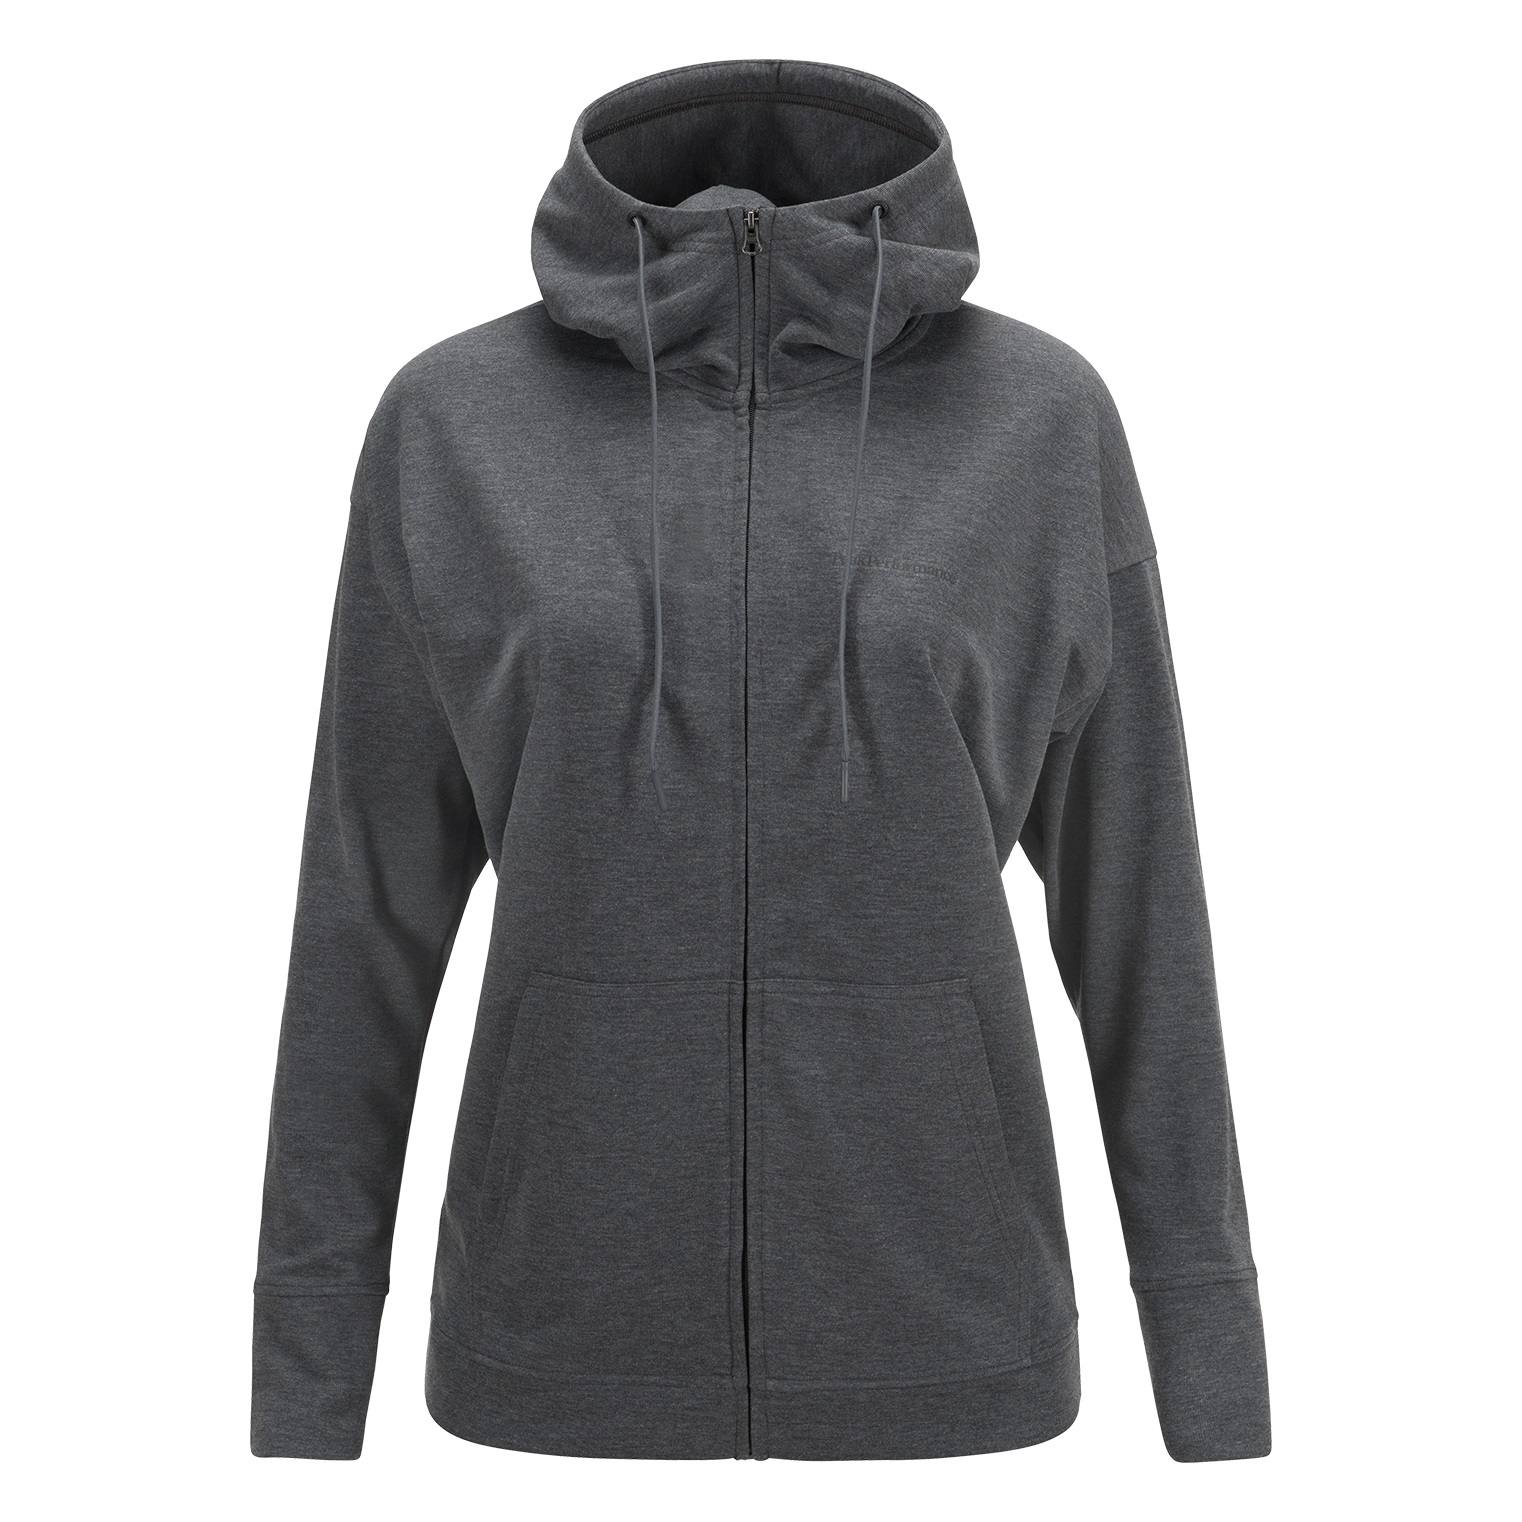 847a82f4fbf8 peak-performance-women-s-structure-zipped-hooded-sweater-dark-grey-mel.jpg